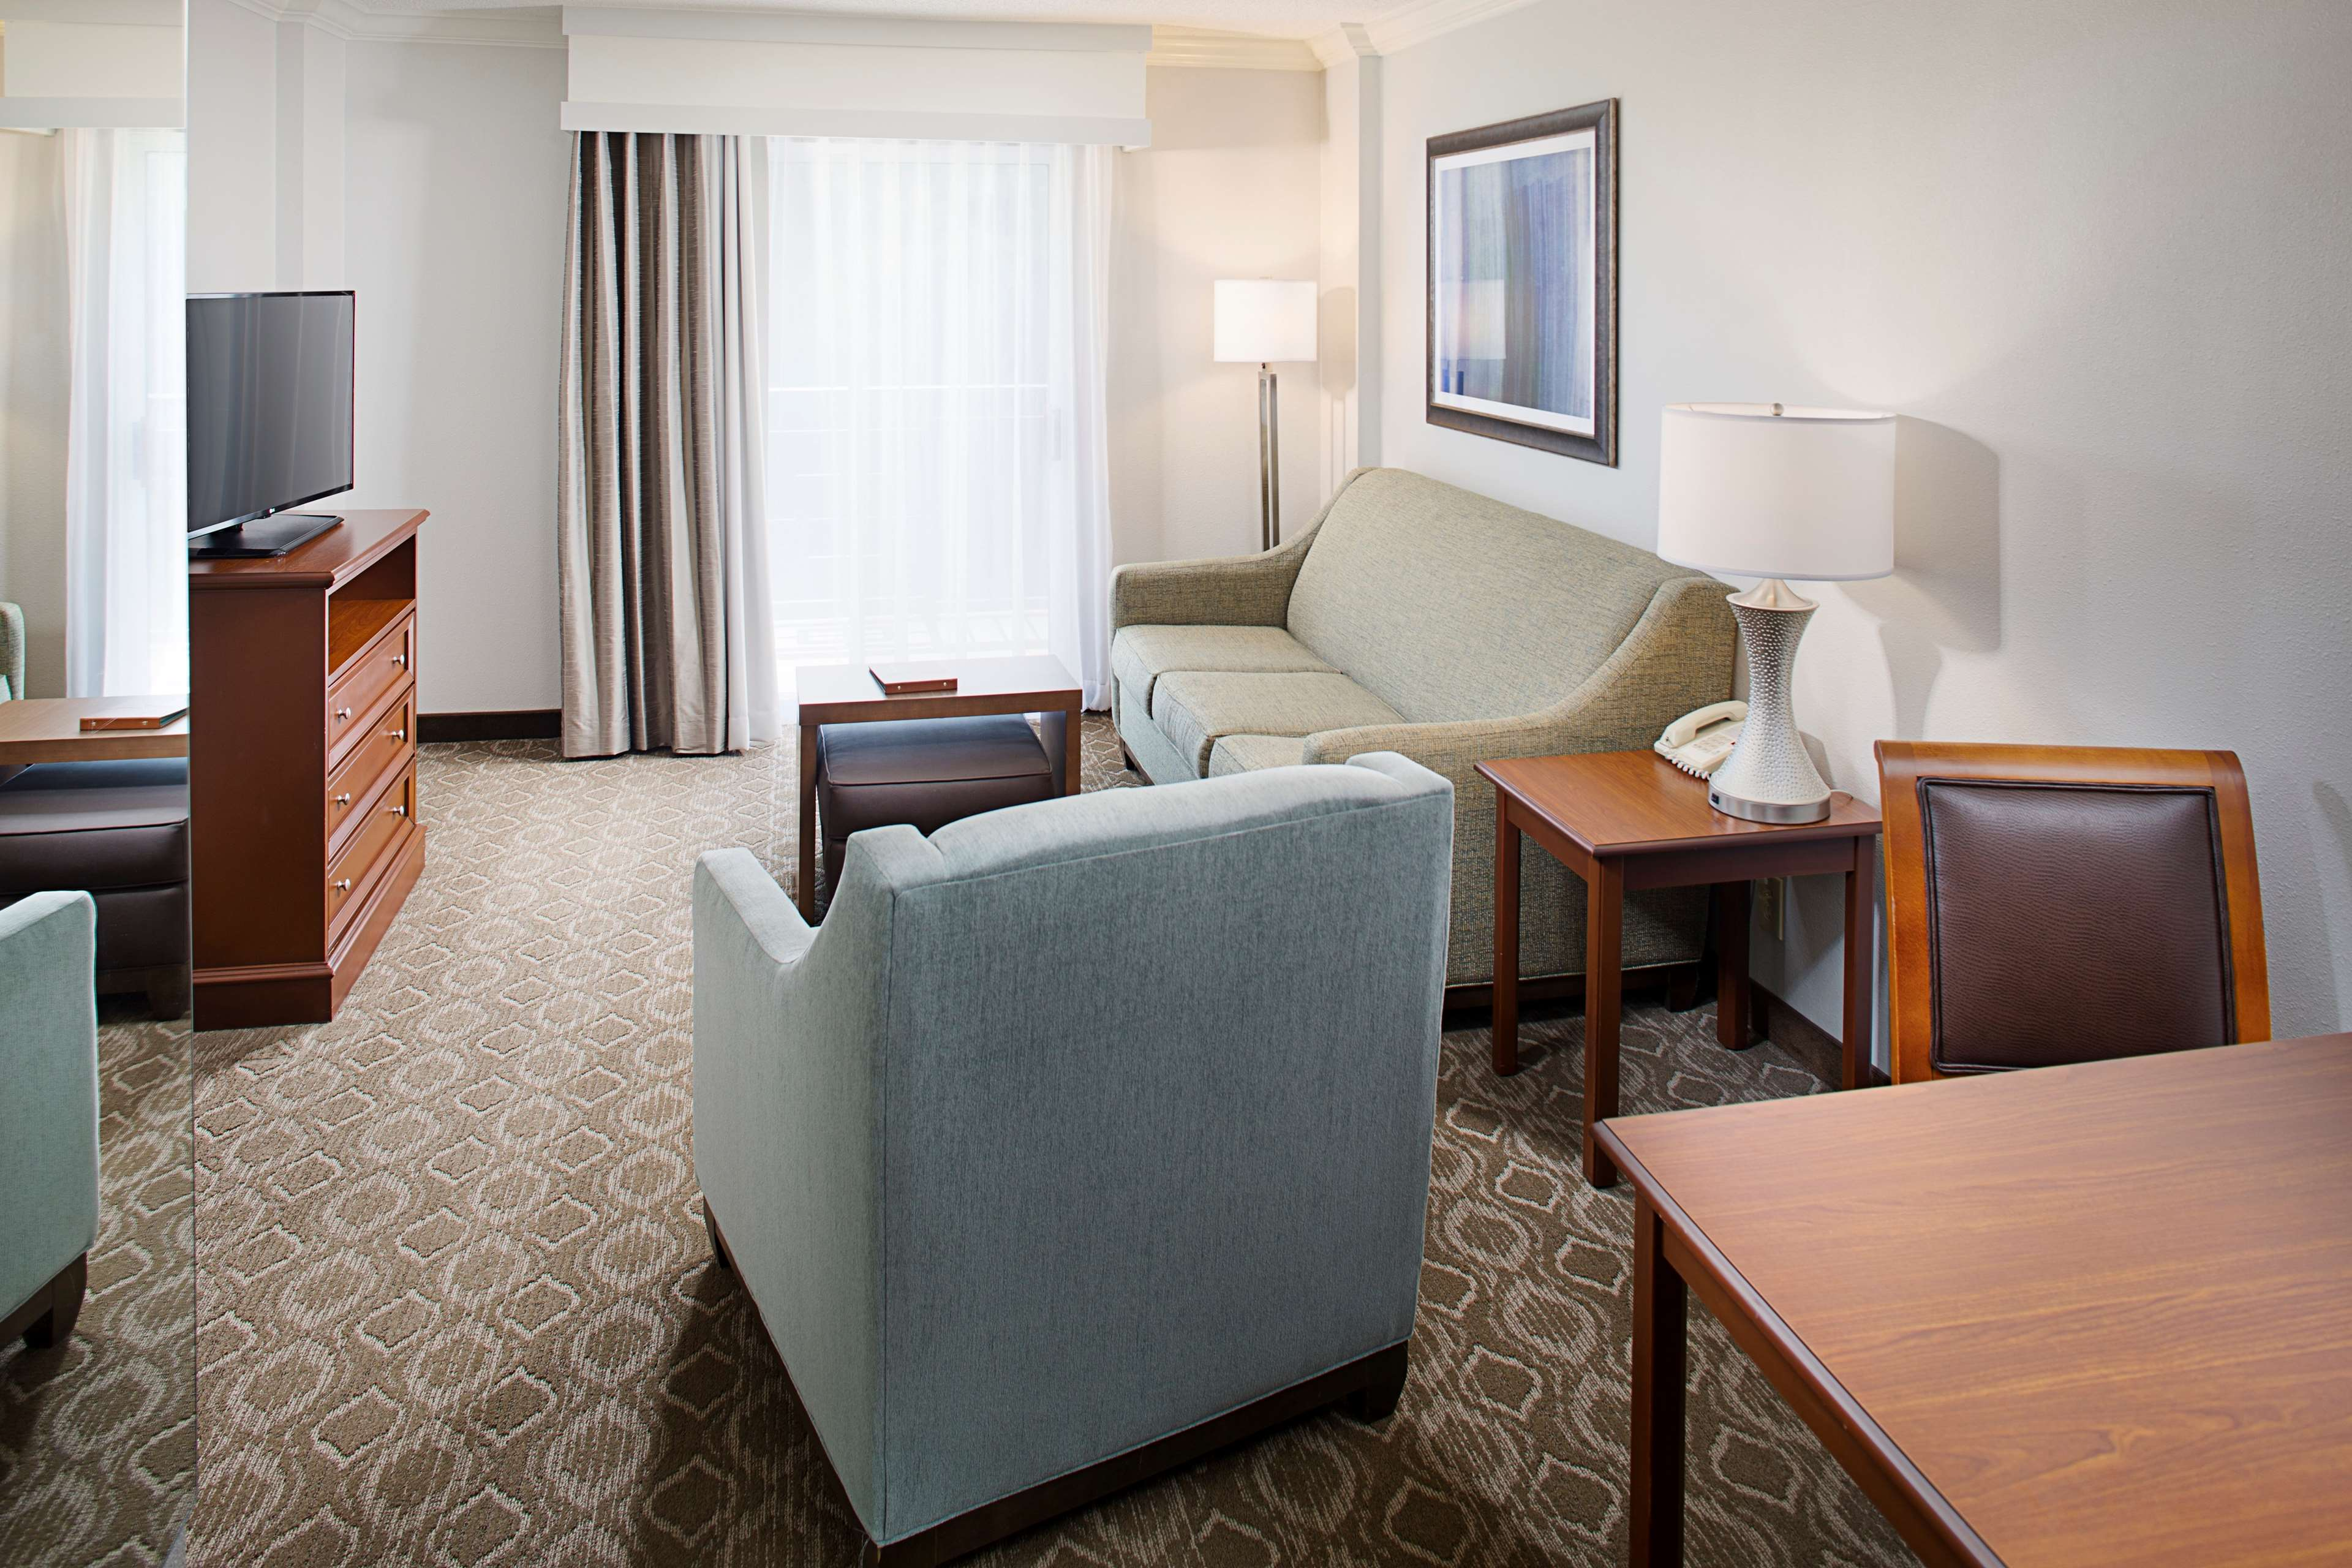 Homewood Suites by Hilton Raleigh/Cary image 33